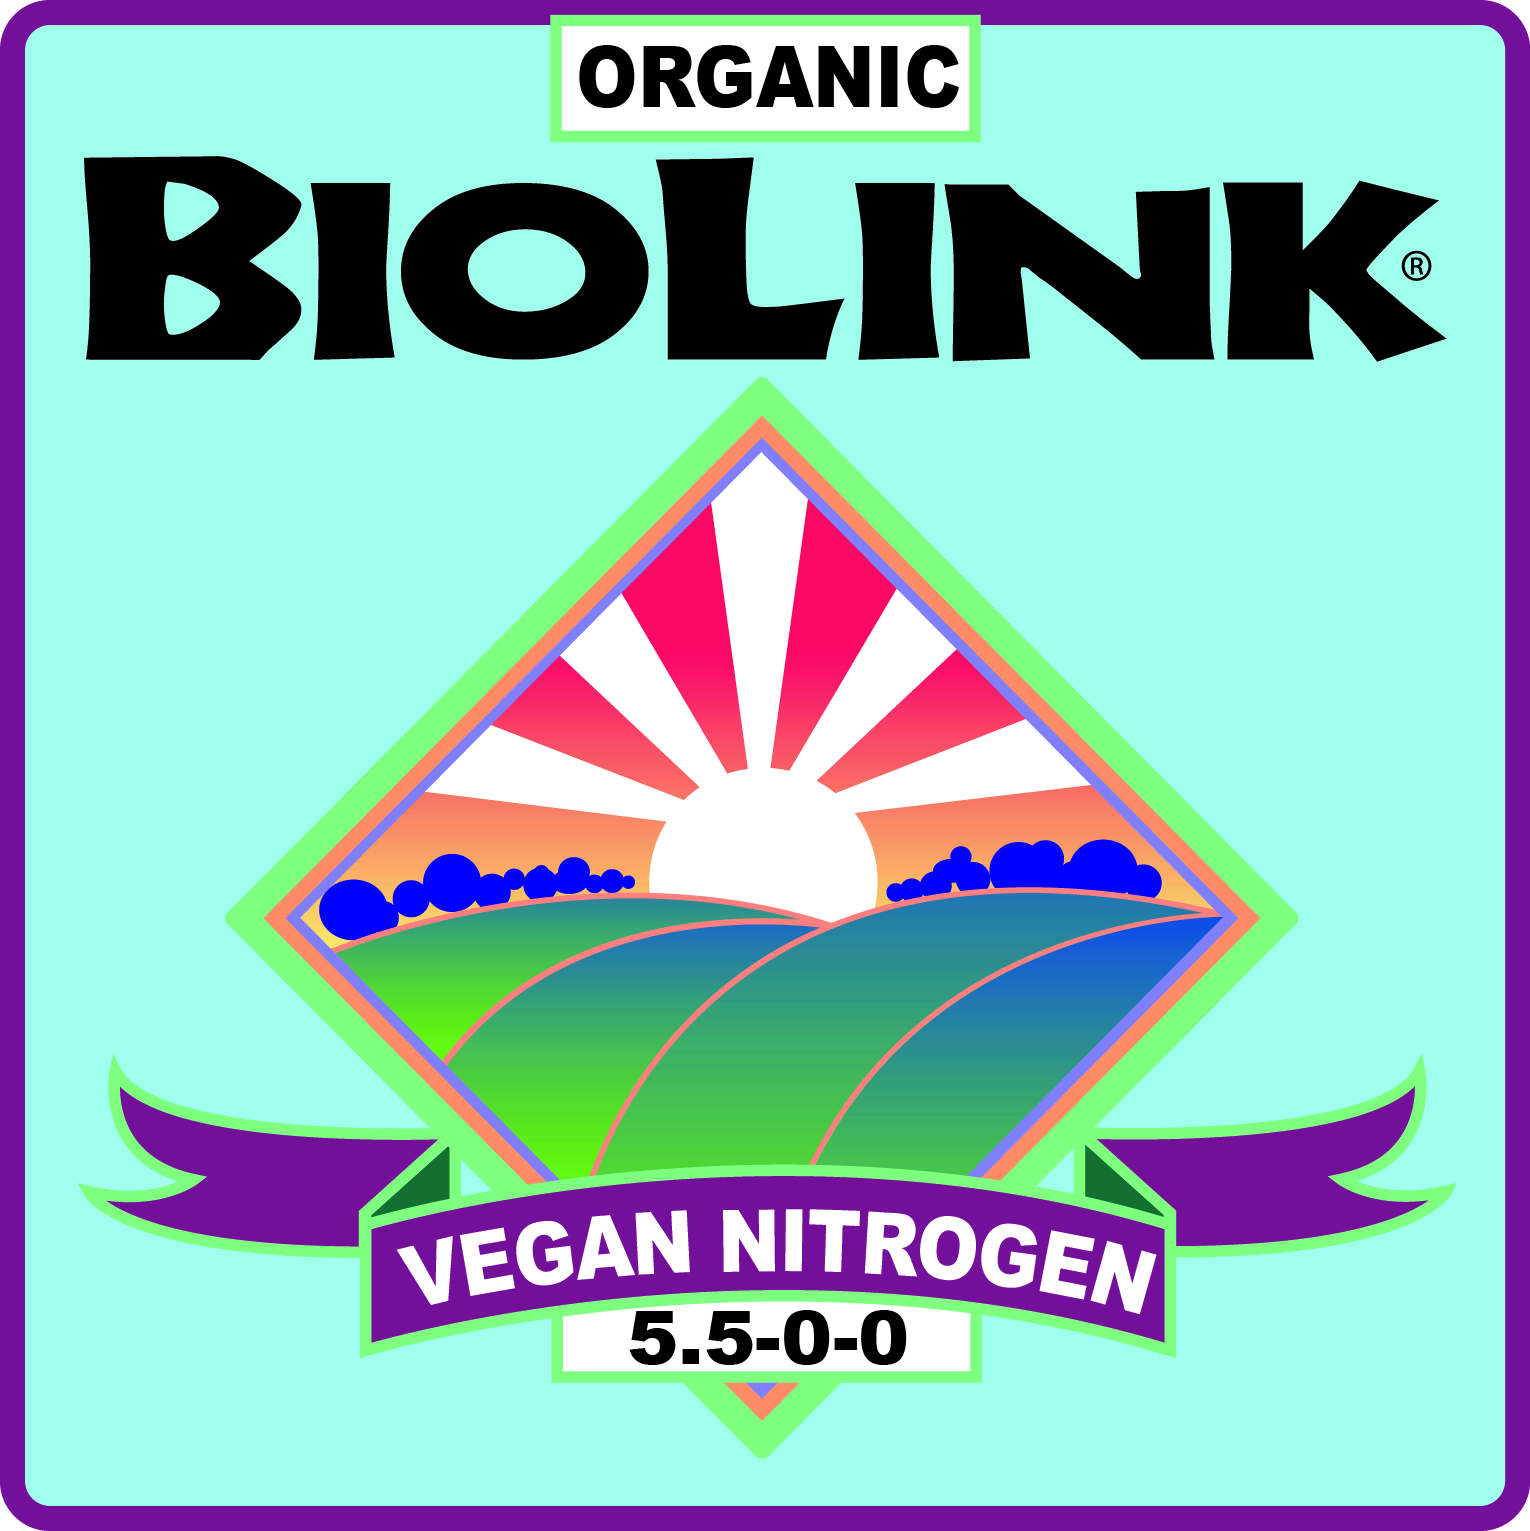 ORGANIC BIOLINK® VEGAN FERTILIZER 5.5-0-0